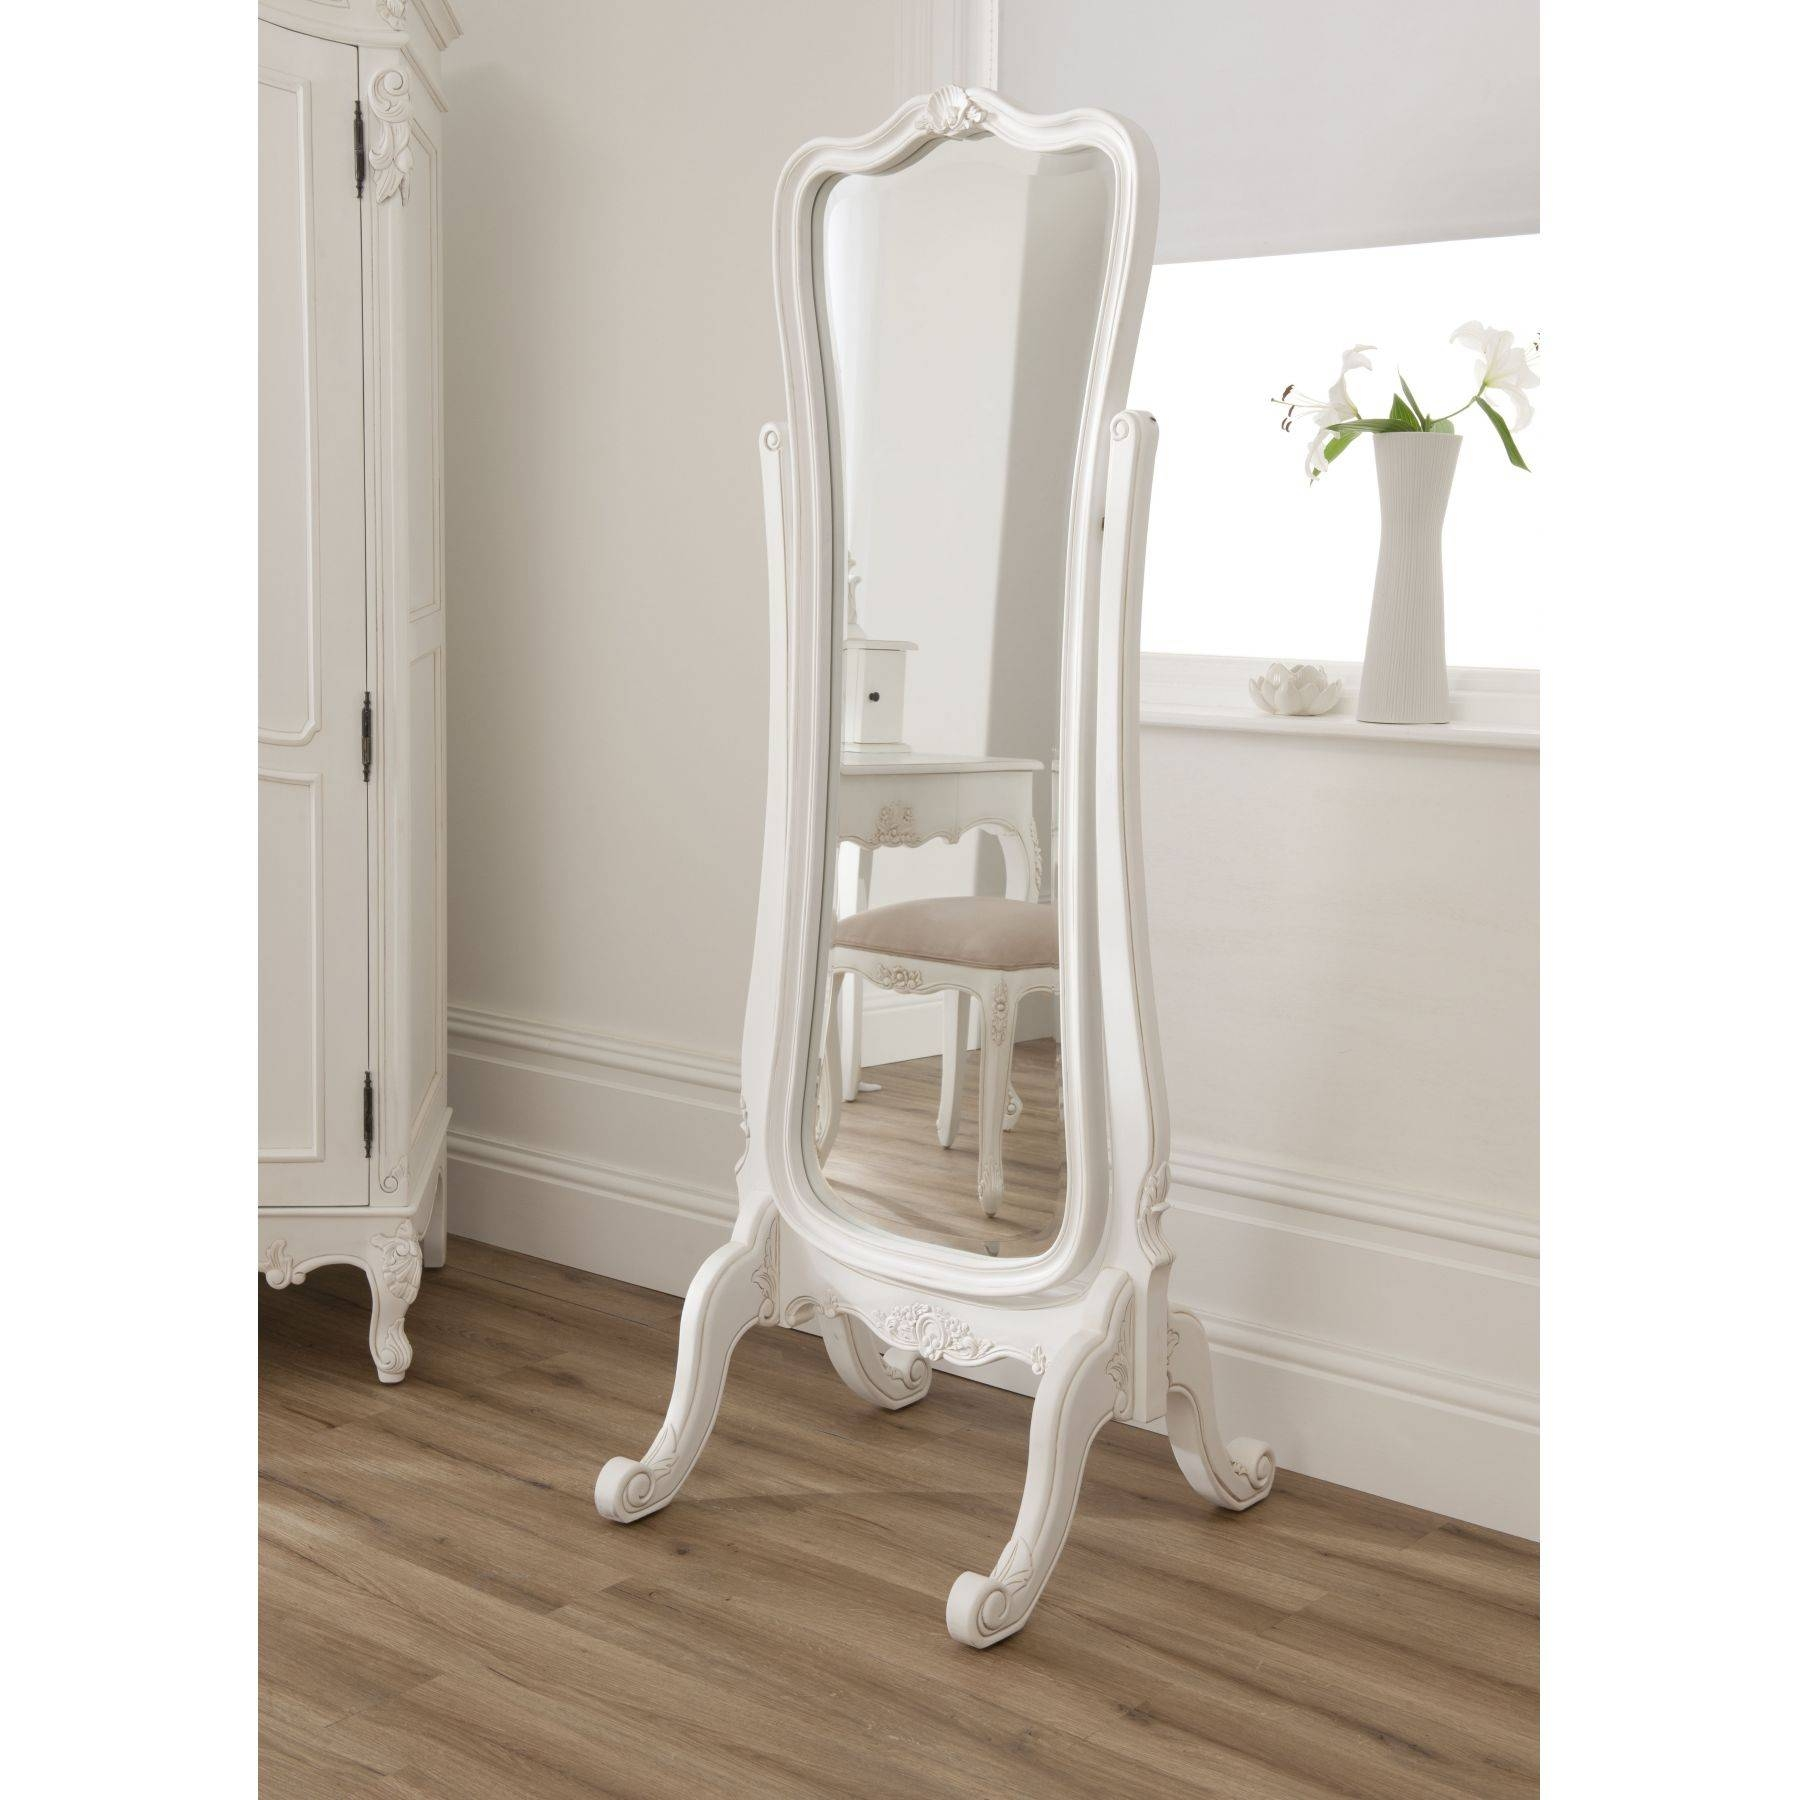 Full Length Mirror Free Standing | Vanity Decoration With Antique Free Standing Mirrors (View 7 of 25)